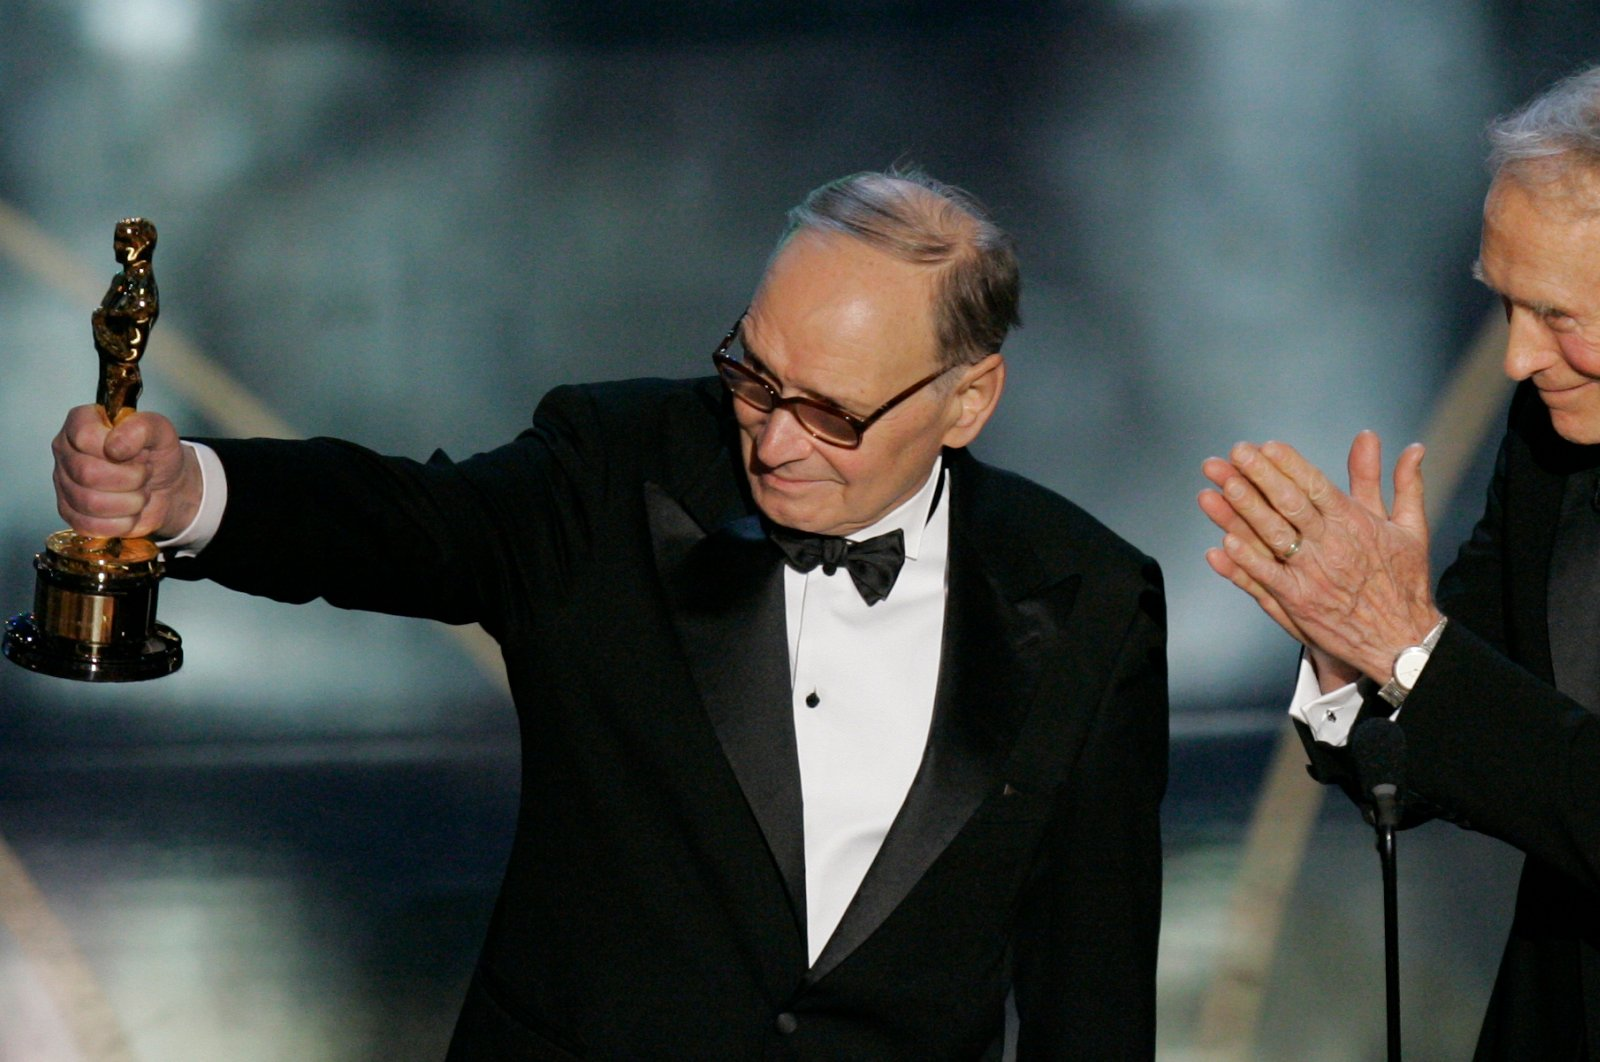 Italian composer Ennio Morricone (L), accepts an honorary Oscar for his contributions to the art of film music as director Clint Eastwood looks on during the 79th Academy Awards telecast in Los Angeles on Feb. 25, 2007. (AP Photo)